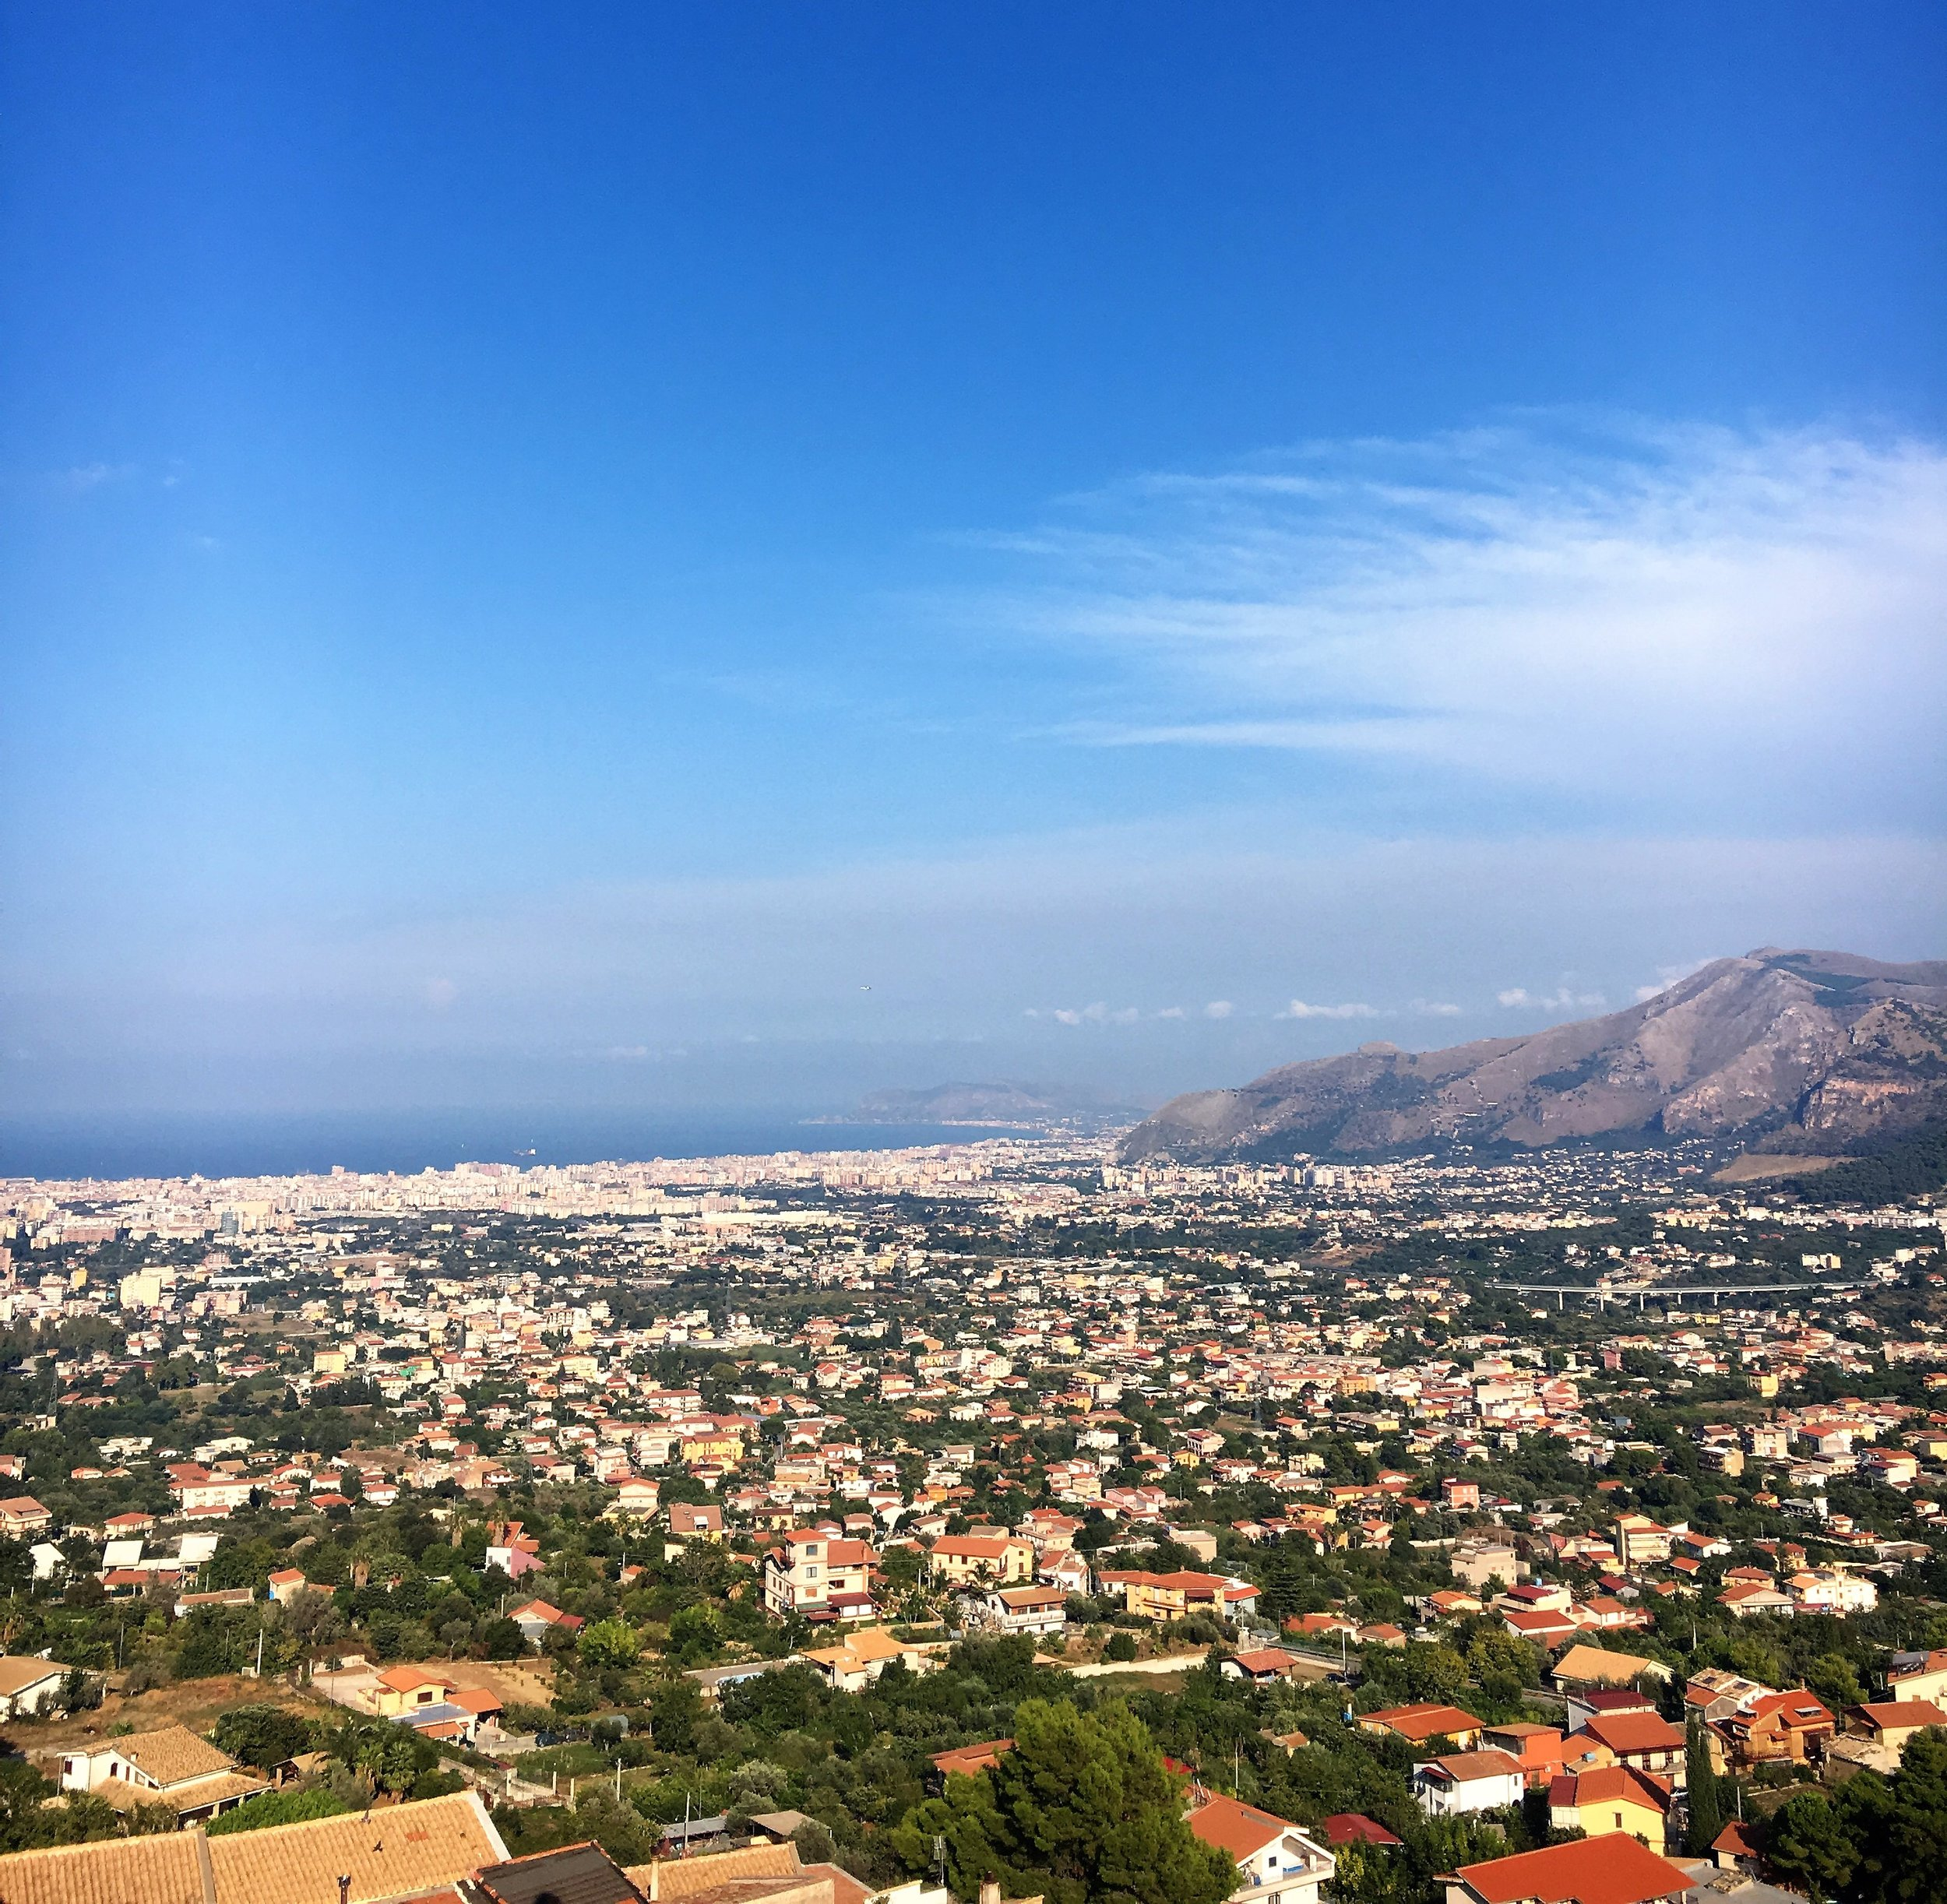 The view to the Mediterranean Sea from the roof terraces of Monreale Cathedral, Sicily, September 2016.